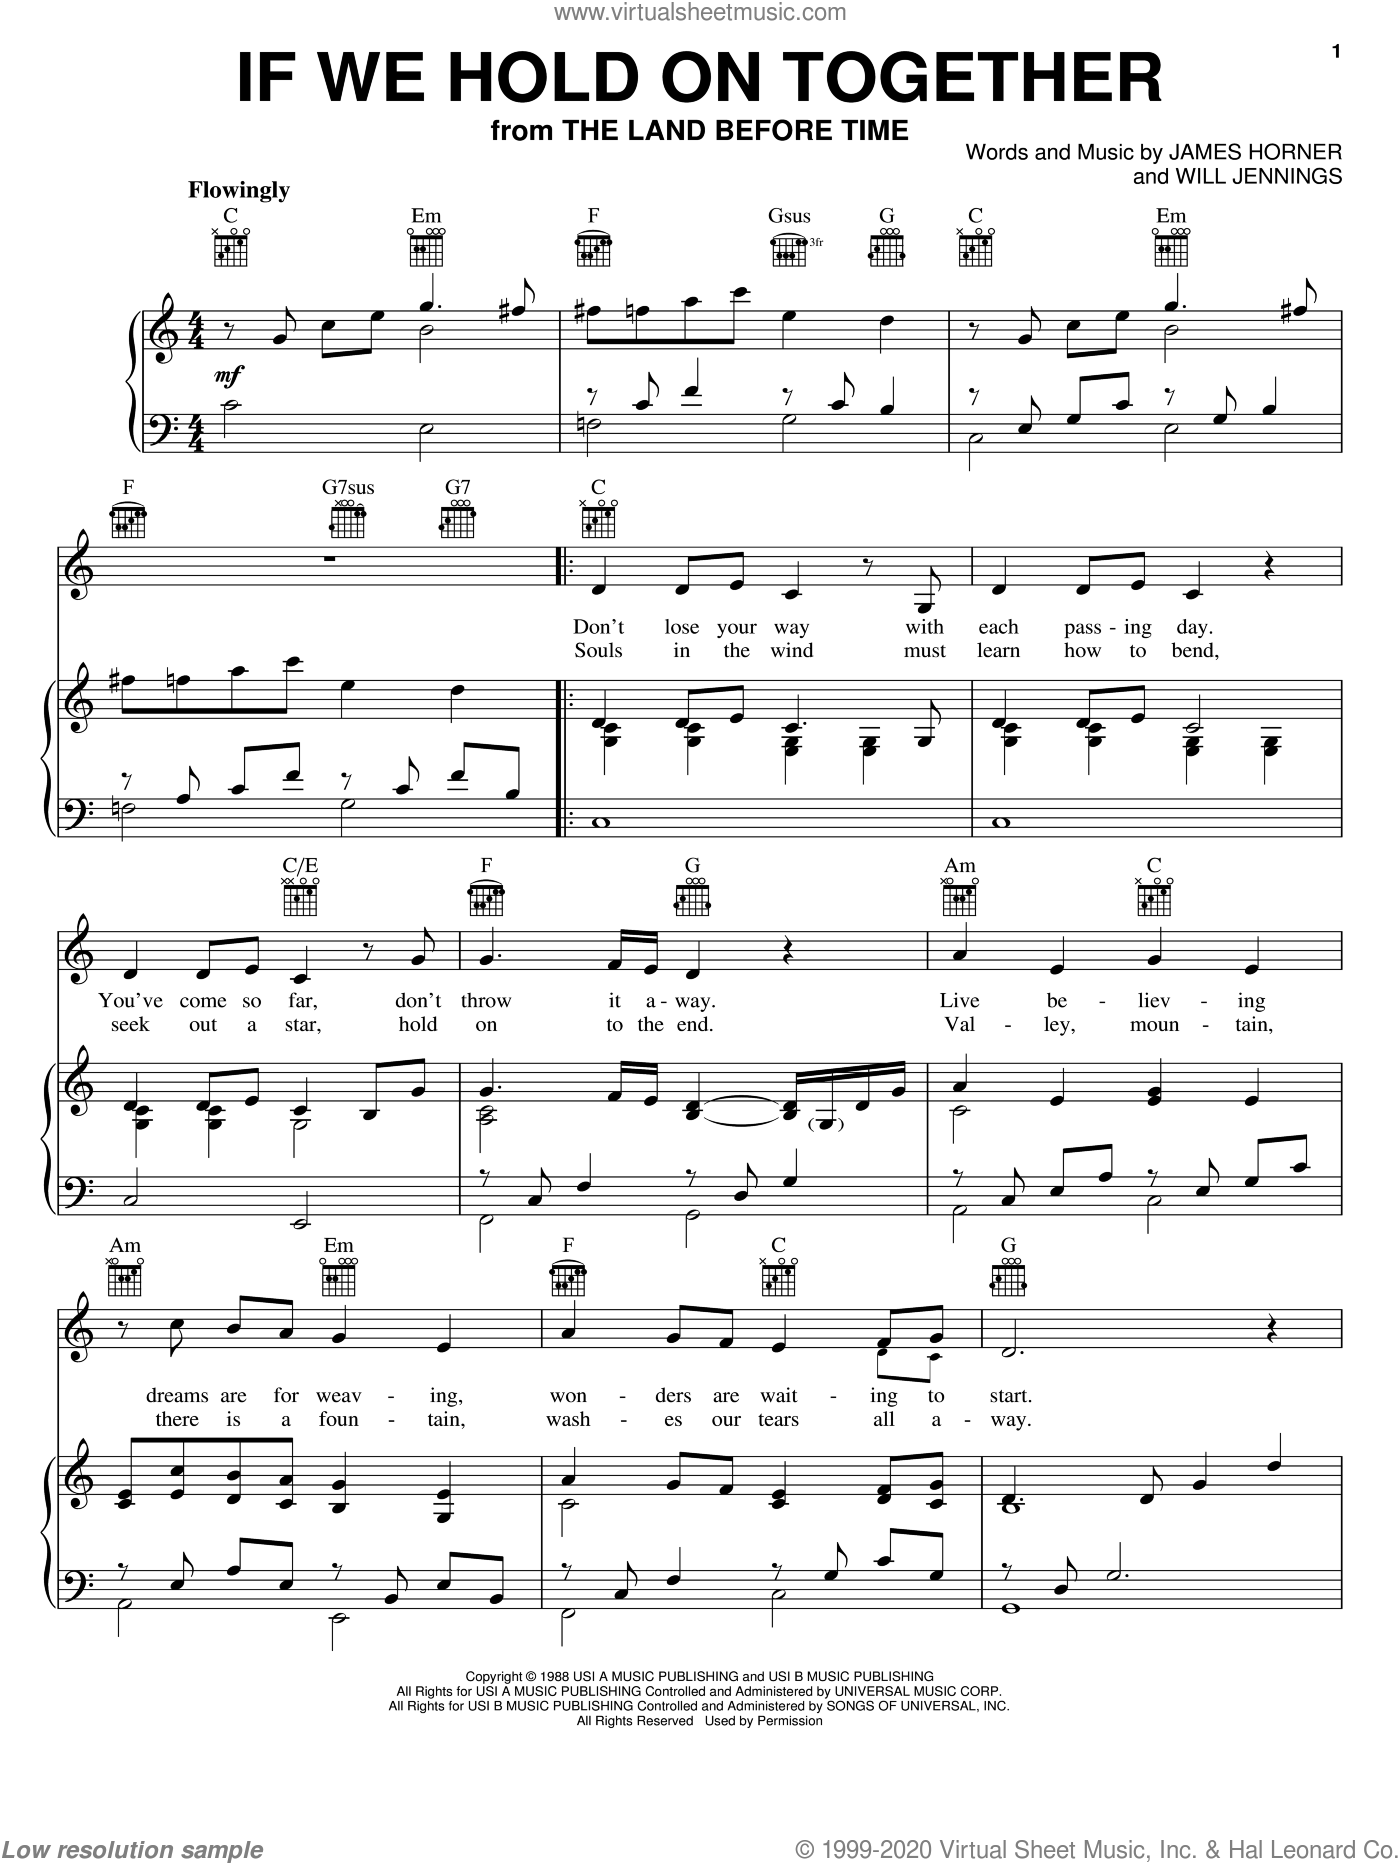 If We Hold On Together sheet music for voice, piano or guitar by Will Jennings